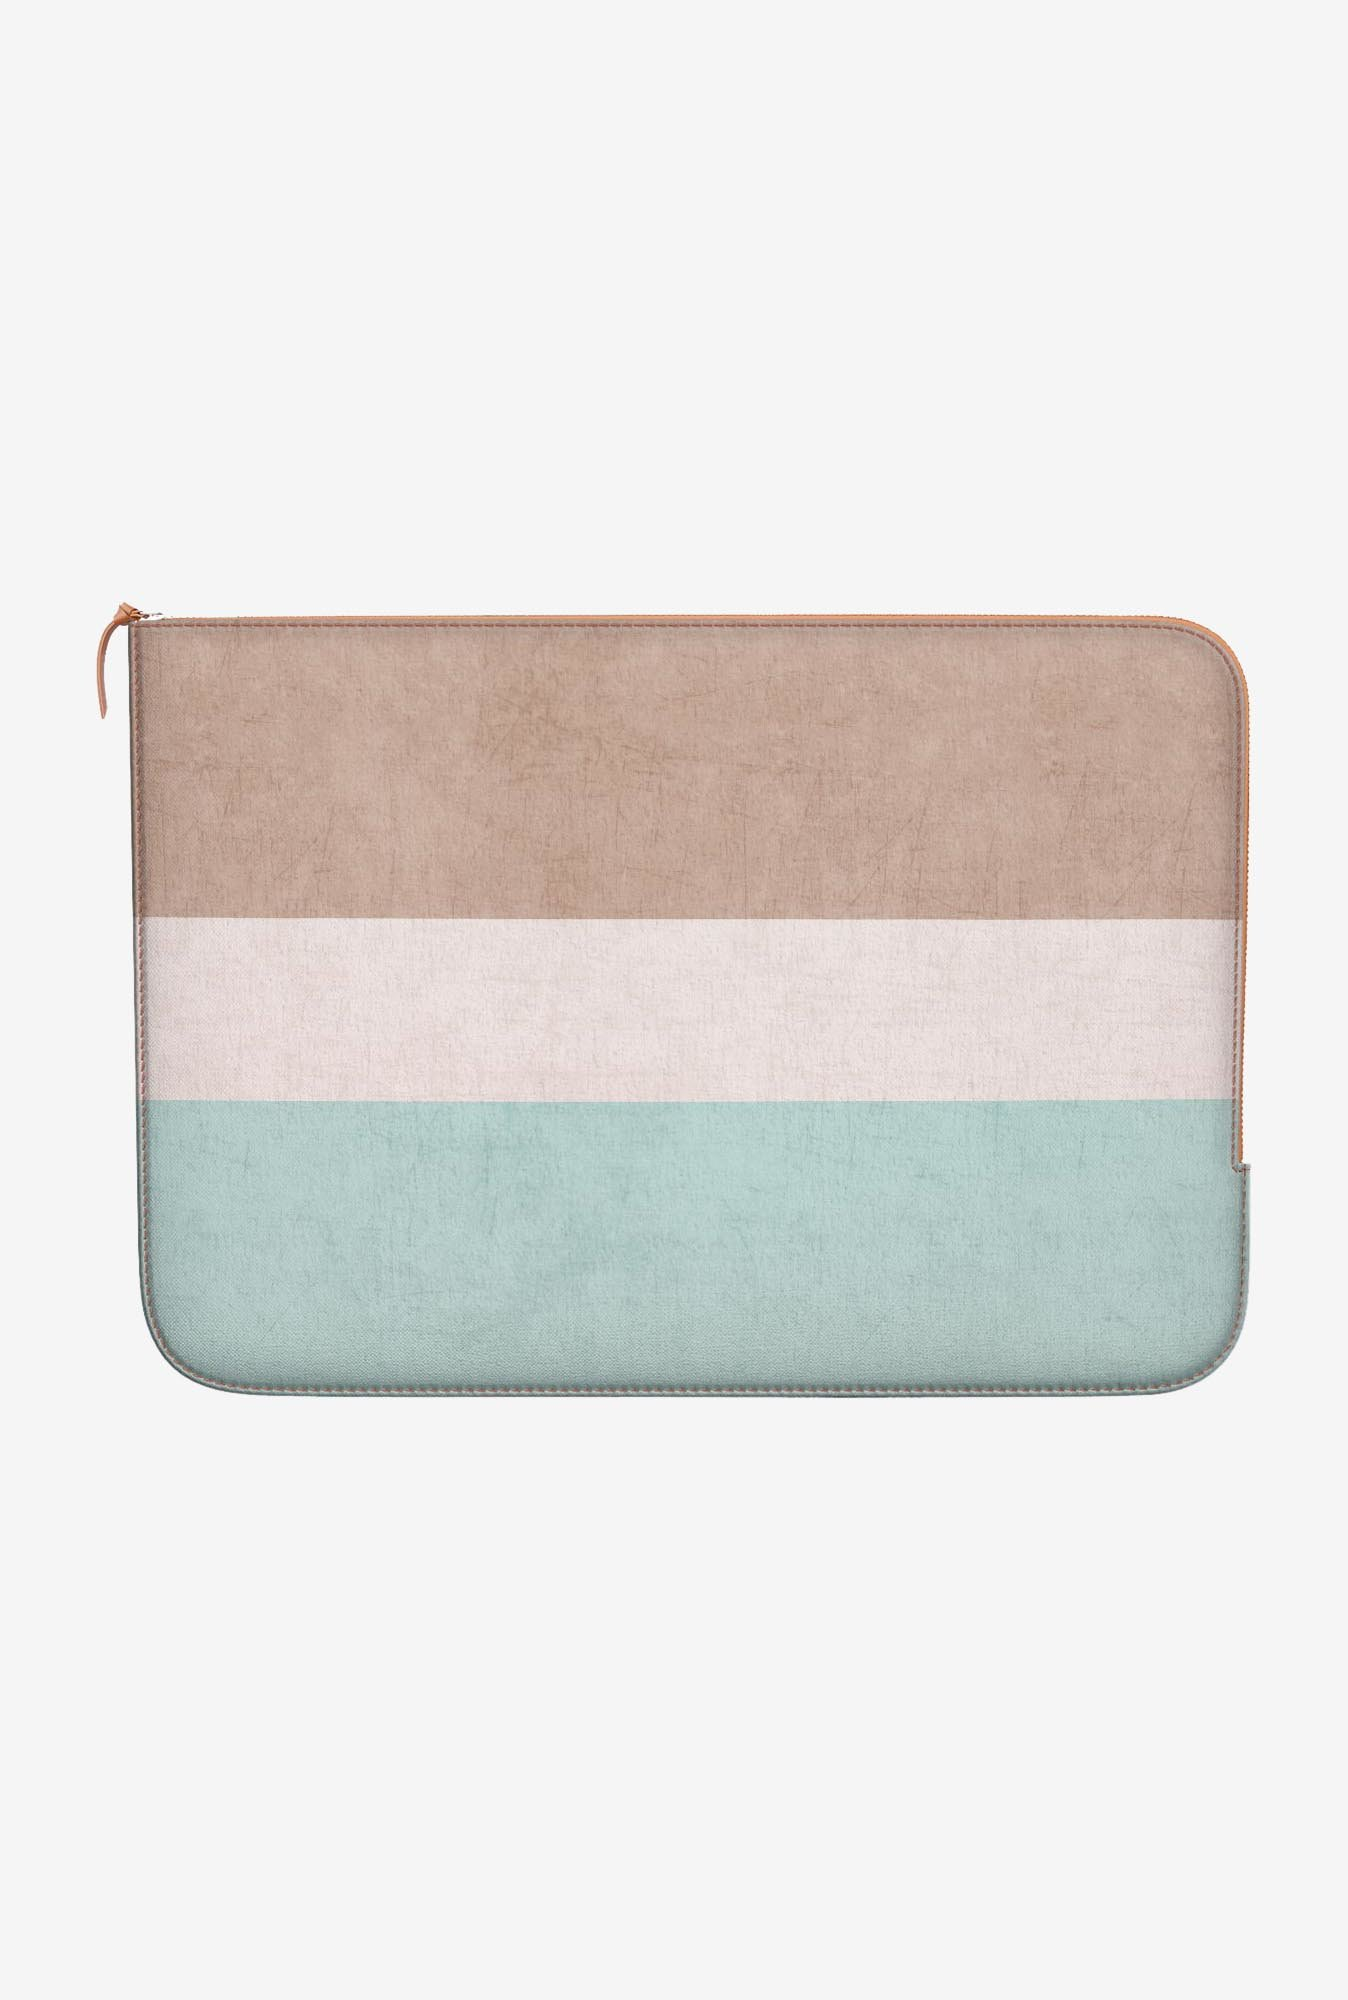 DailyObjects Beach Classic MacBook Air 13 Zippered Sleeve